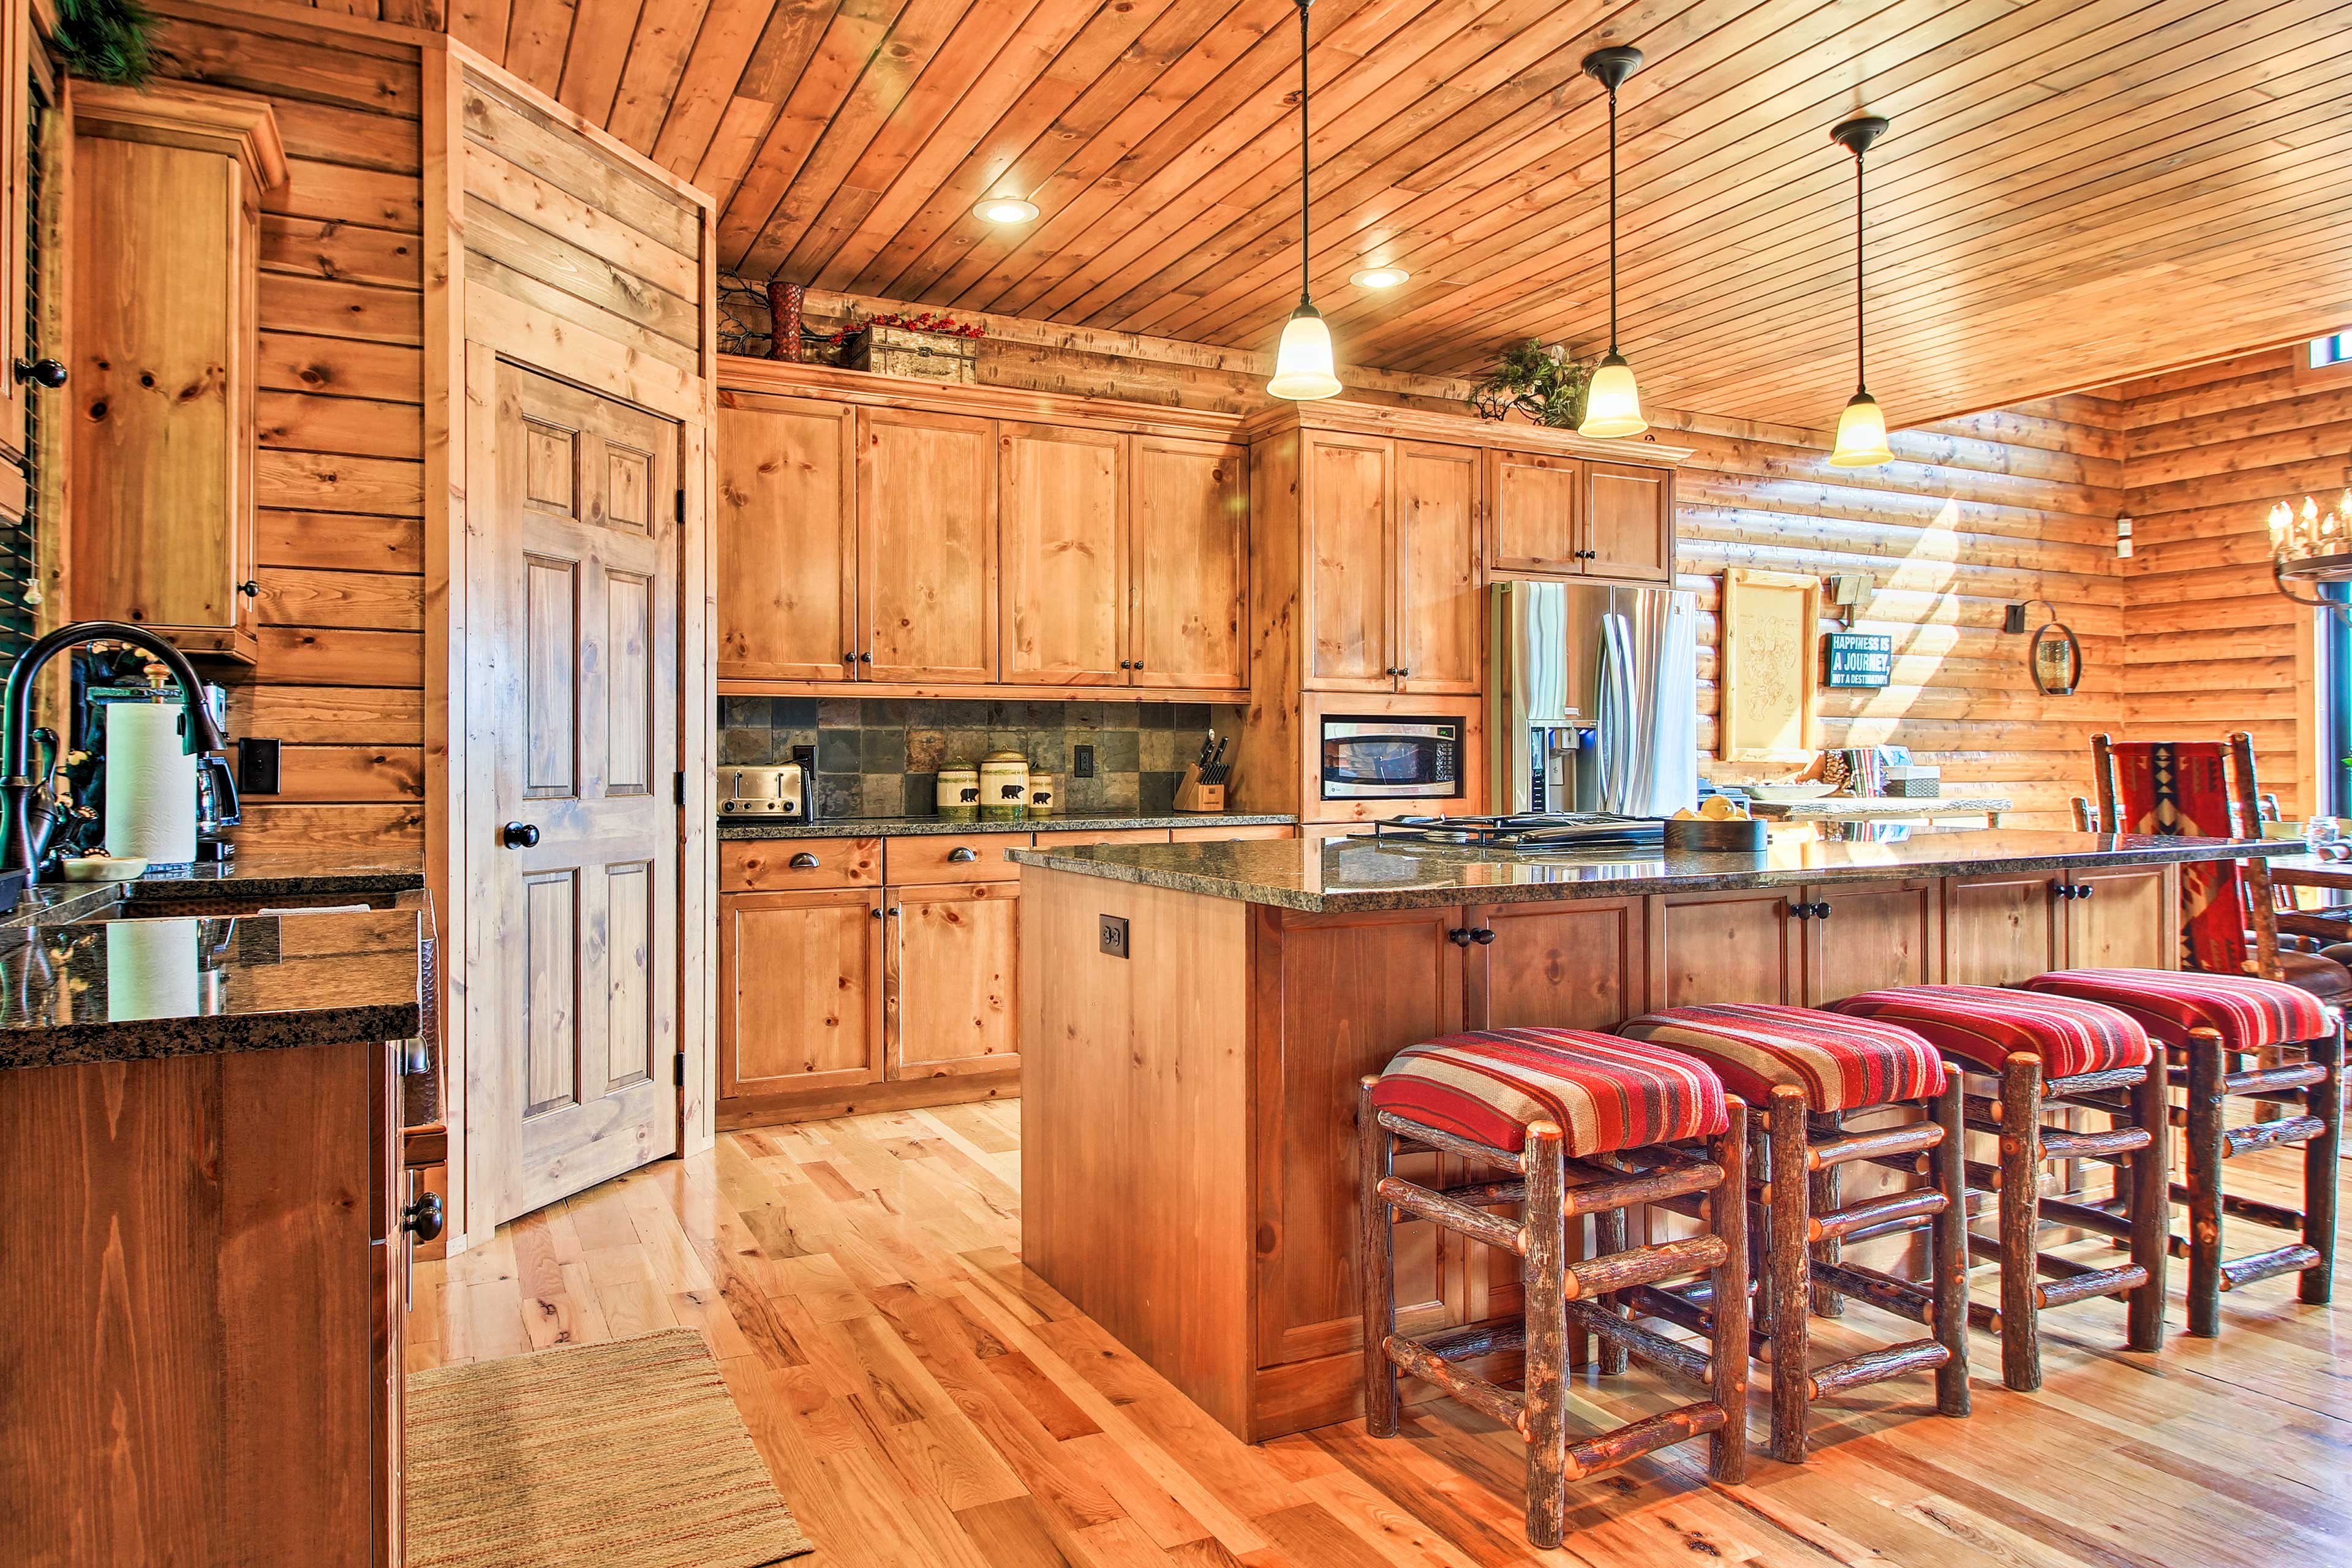 Step inside and enter the full kitchen.